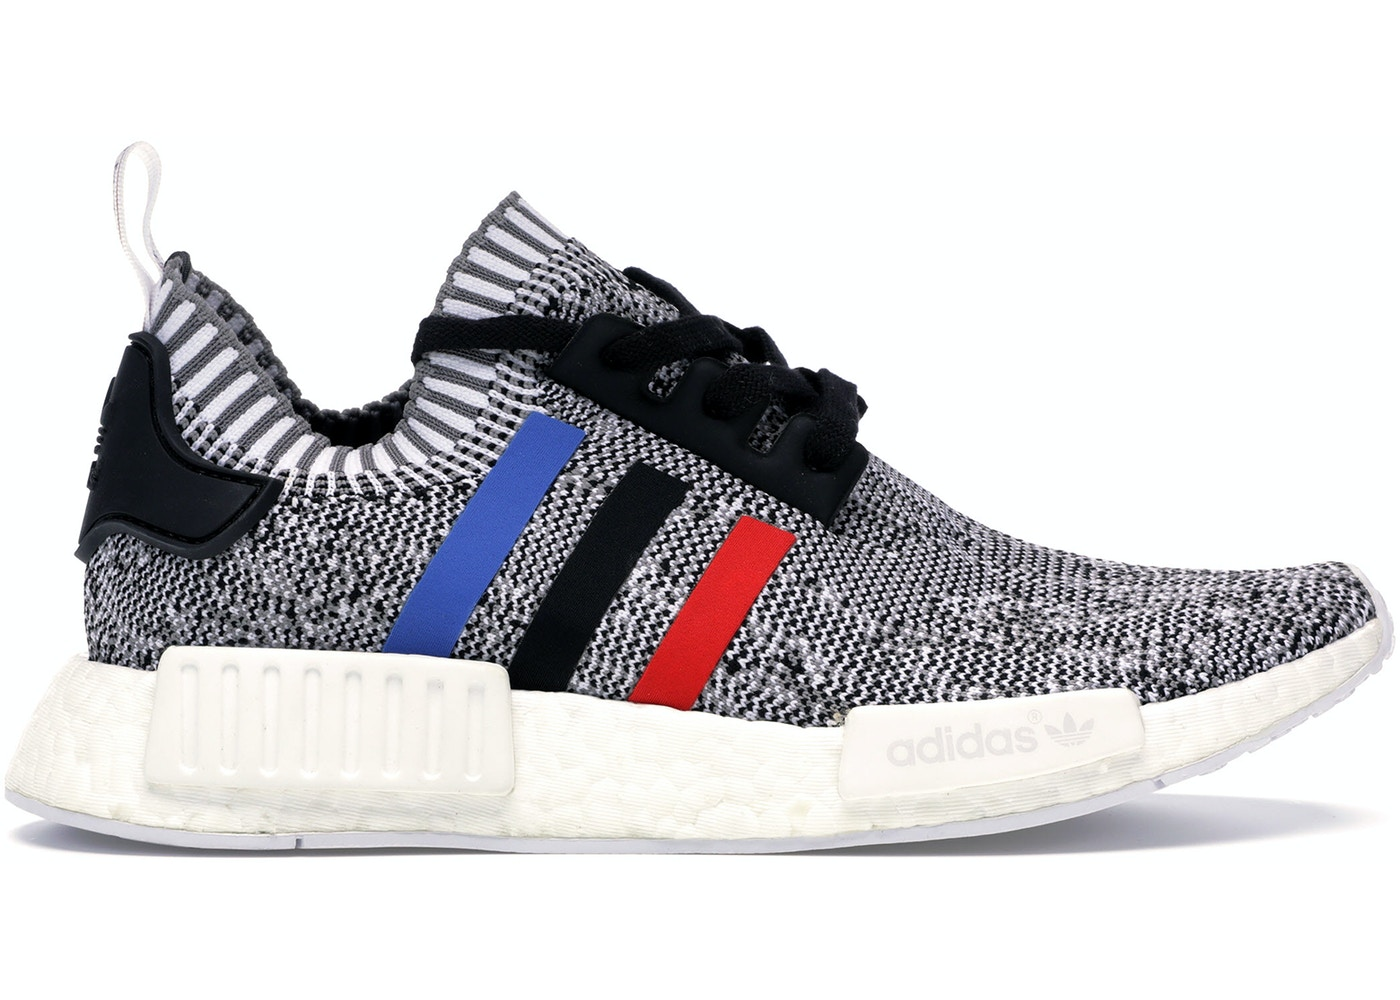 pretty nice bb175 9726d adidas NMD Size 4 Shoes - Volatility